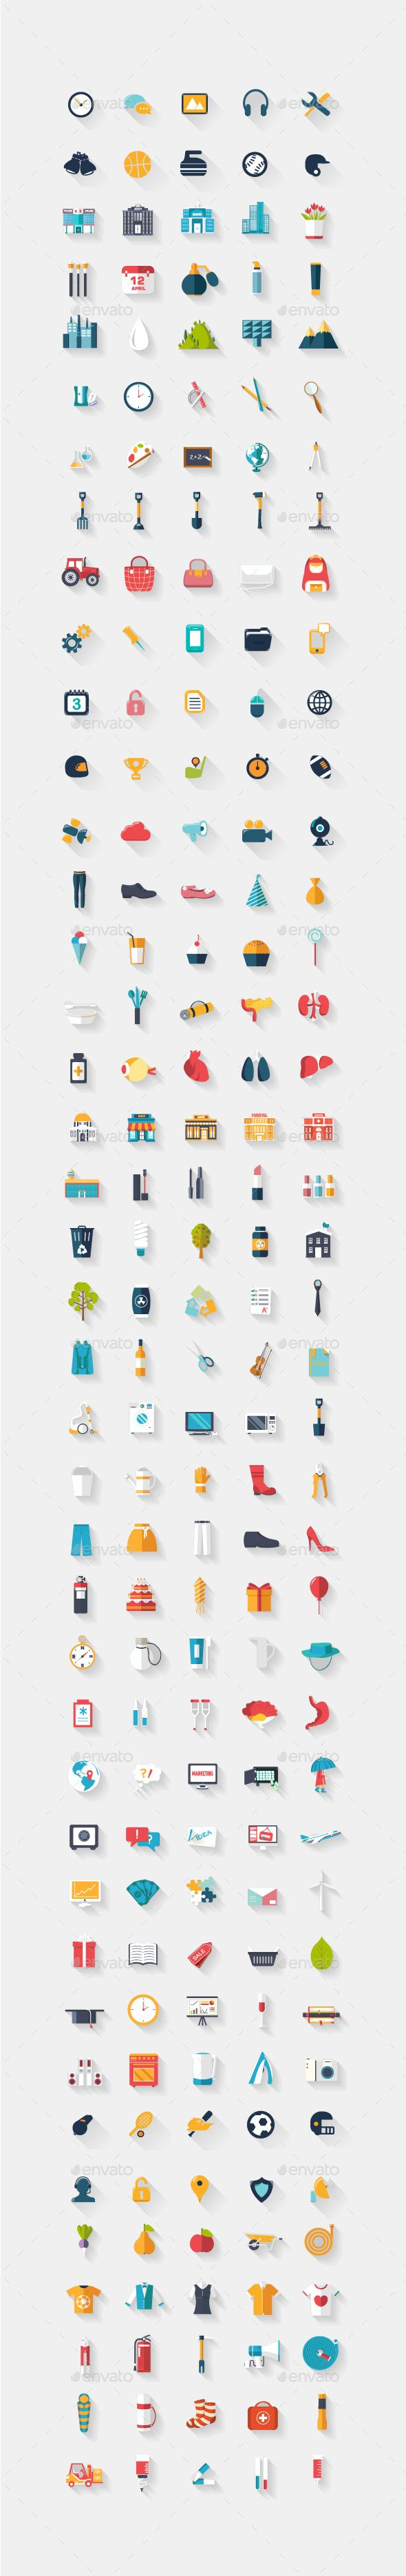 3d icons, Long shadow icon designs — Vector EPS #e-commerce #knowledge • Available here → https://graphicriver.net/item/3d-icons-long-shadow-icon-designs/18441477?ref=pxcr